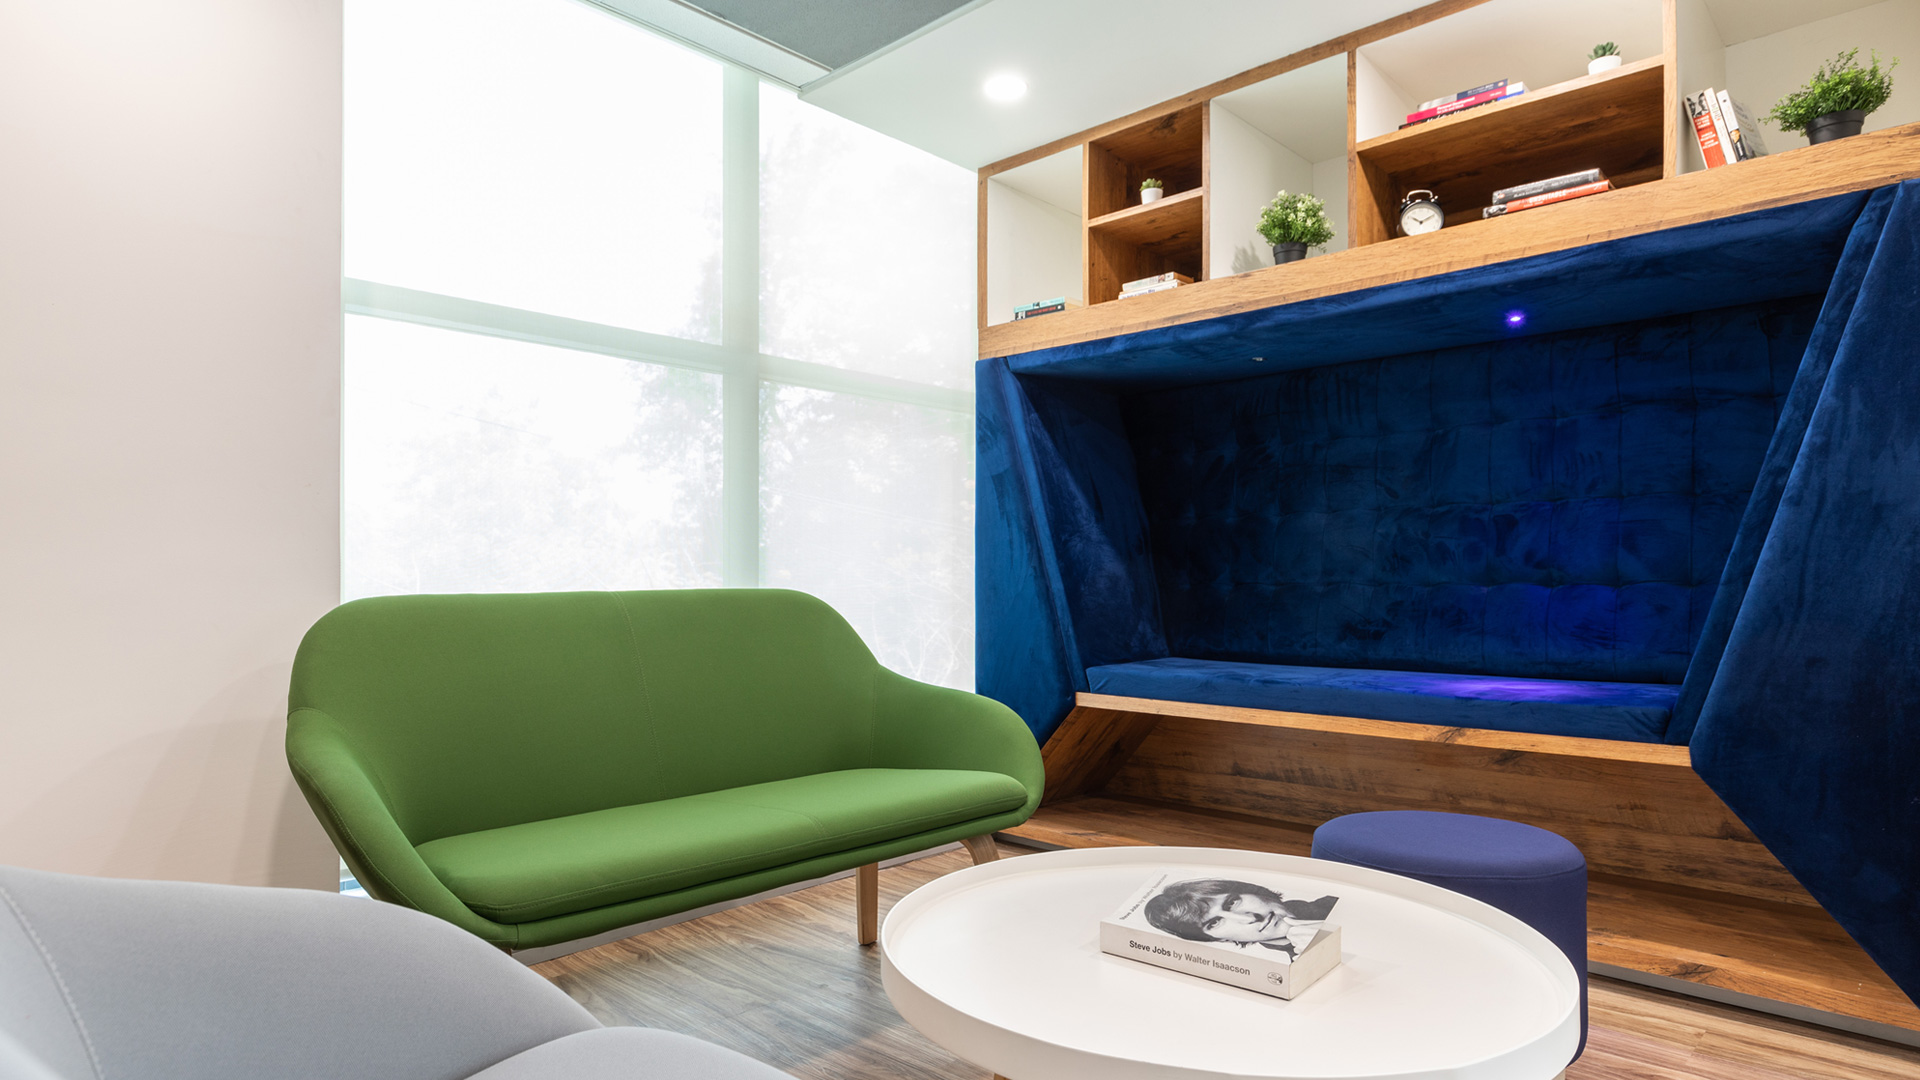 Qhub - Coworking Office Space   Business Center   Plug and